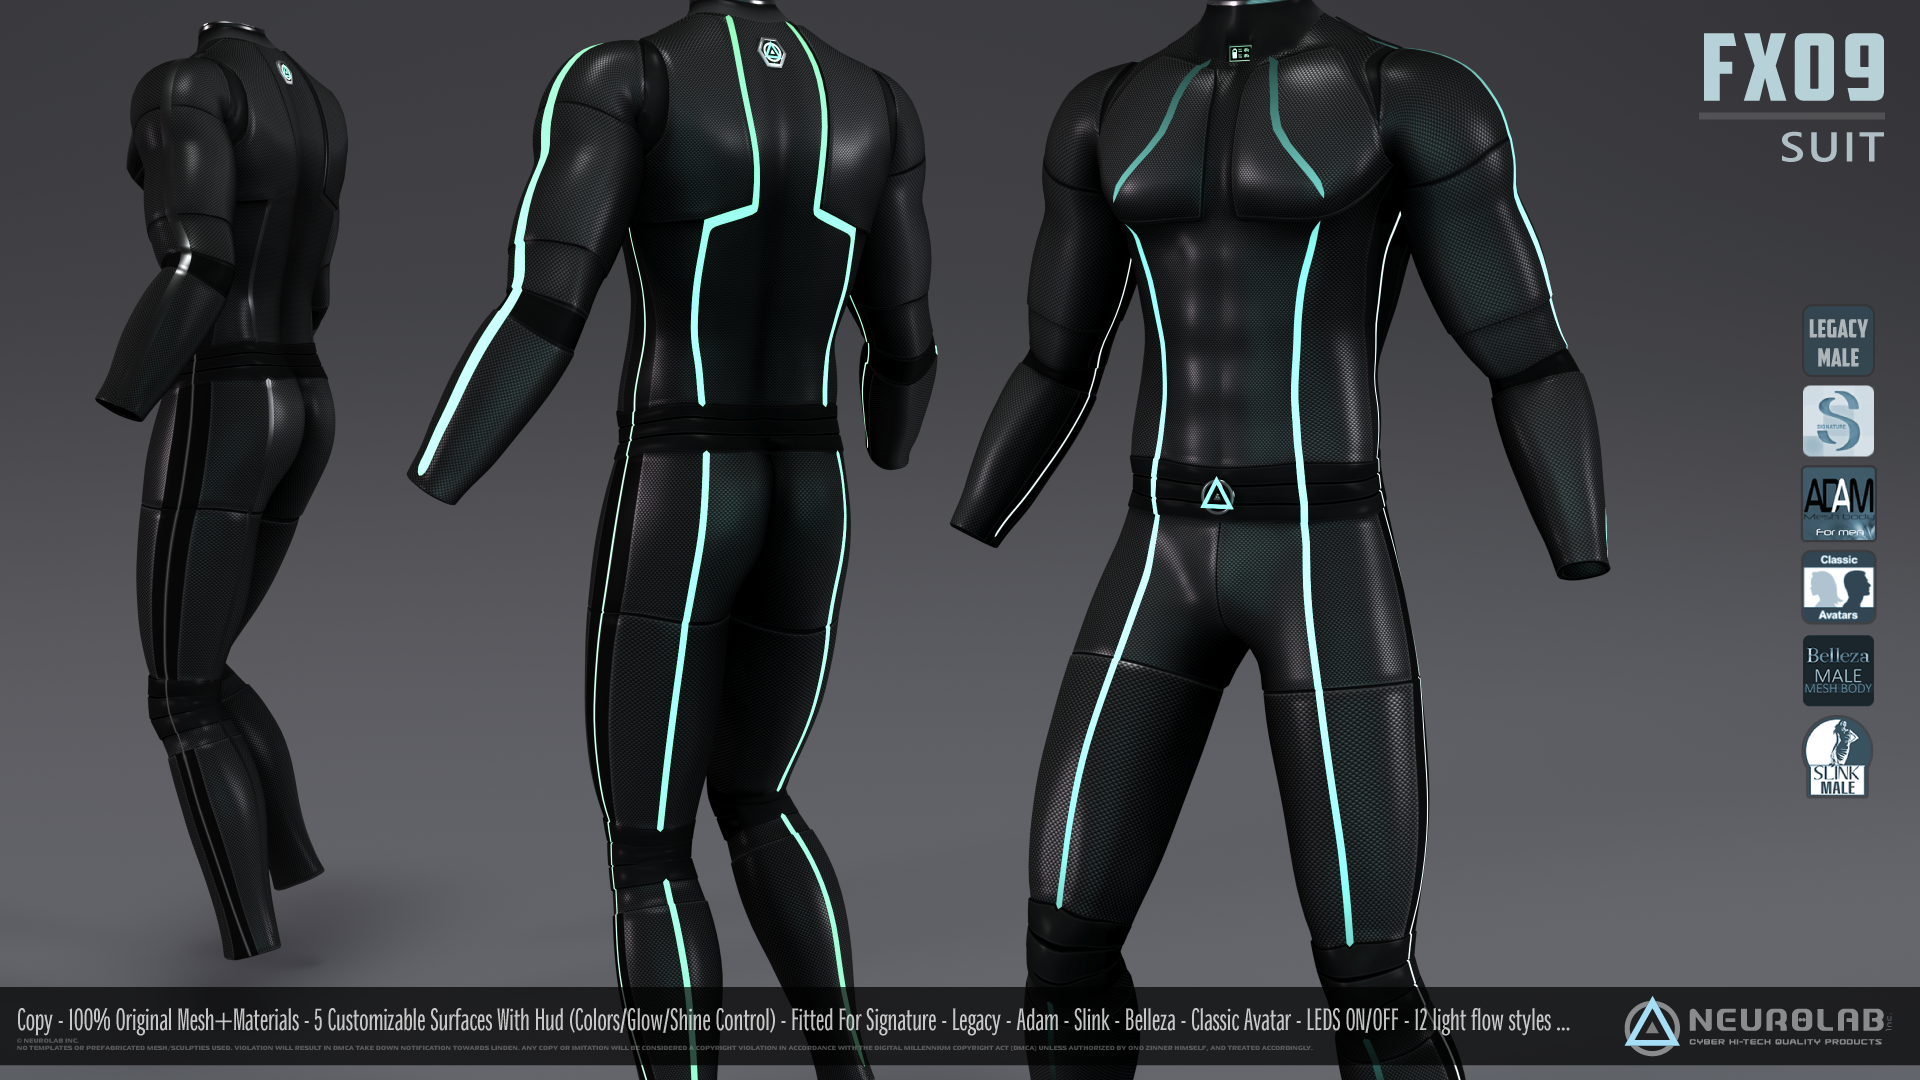 FX09 CatSuit for Men (FITTED) [1.6] *Update*